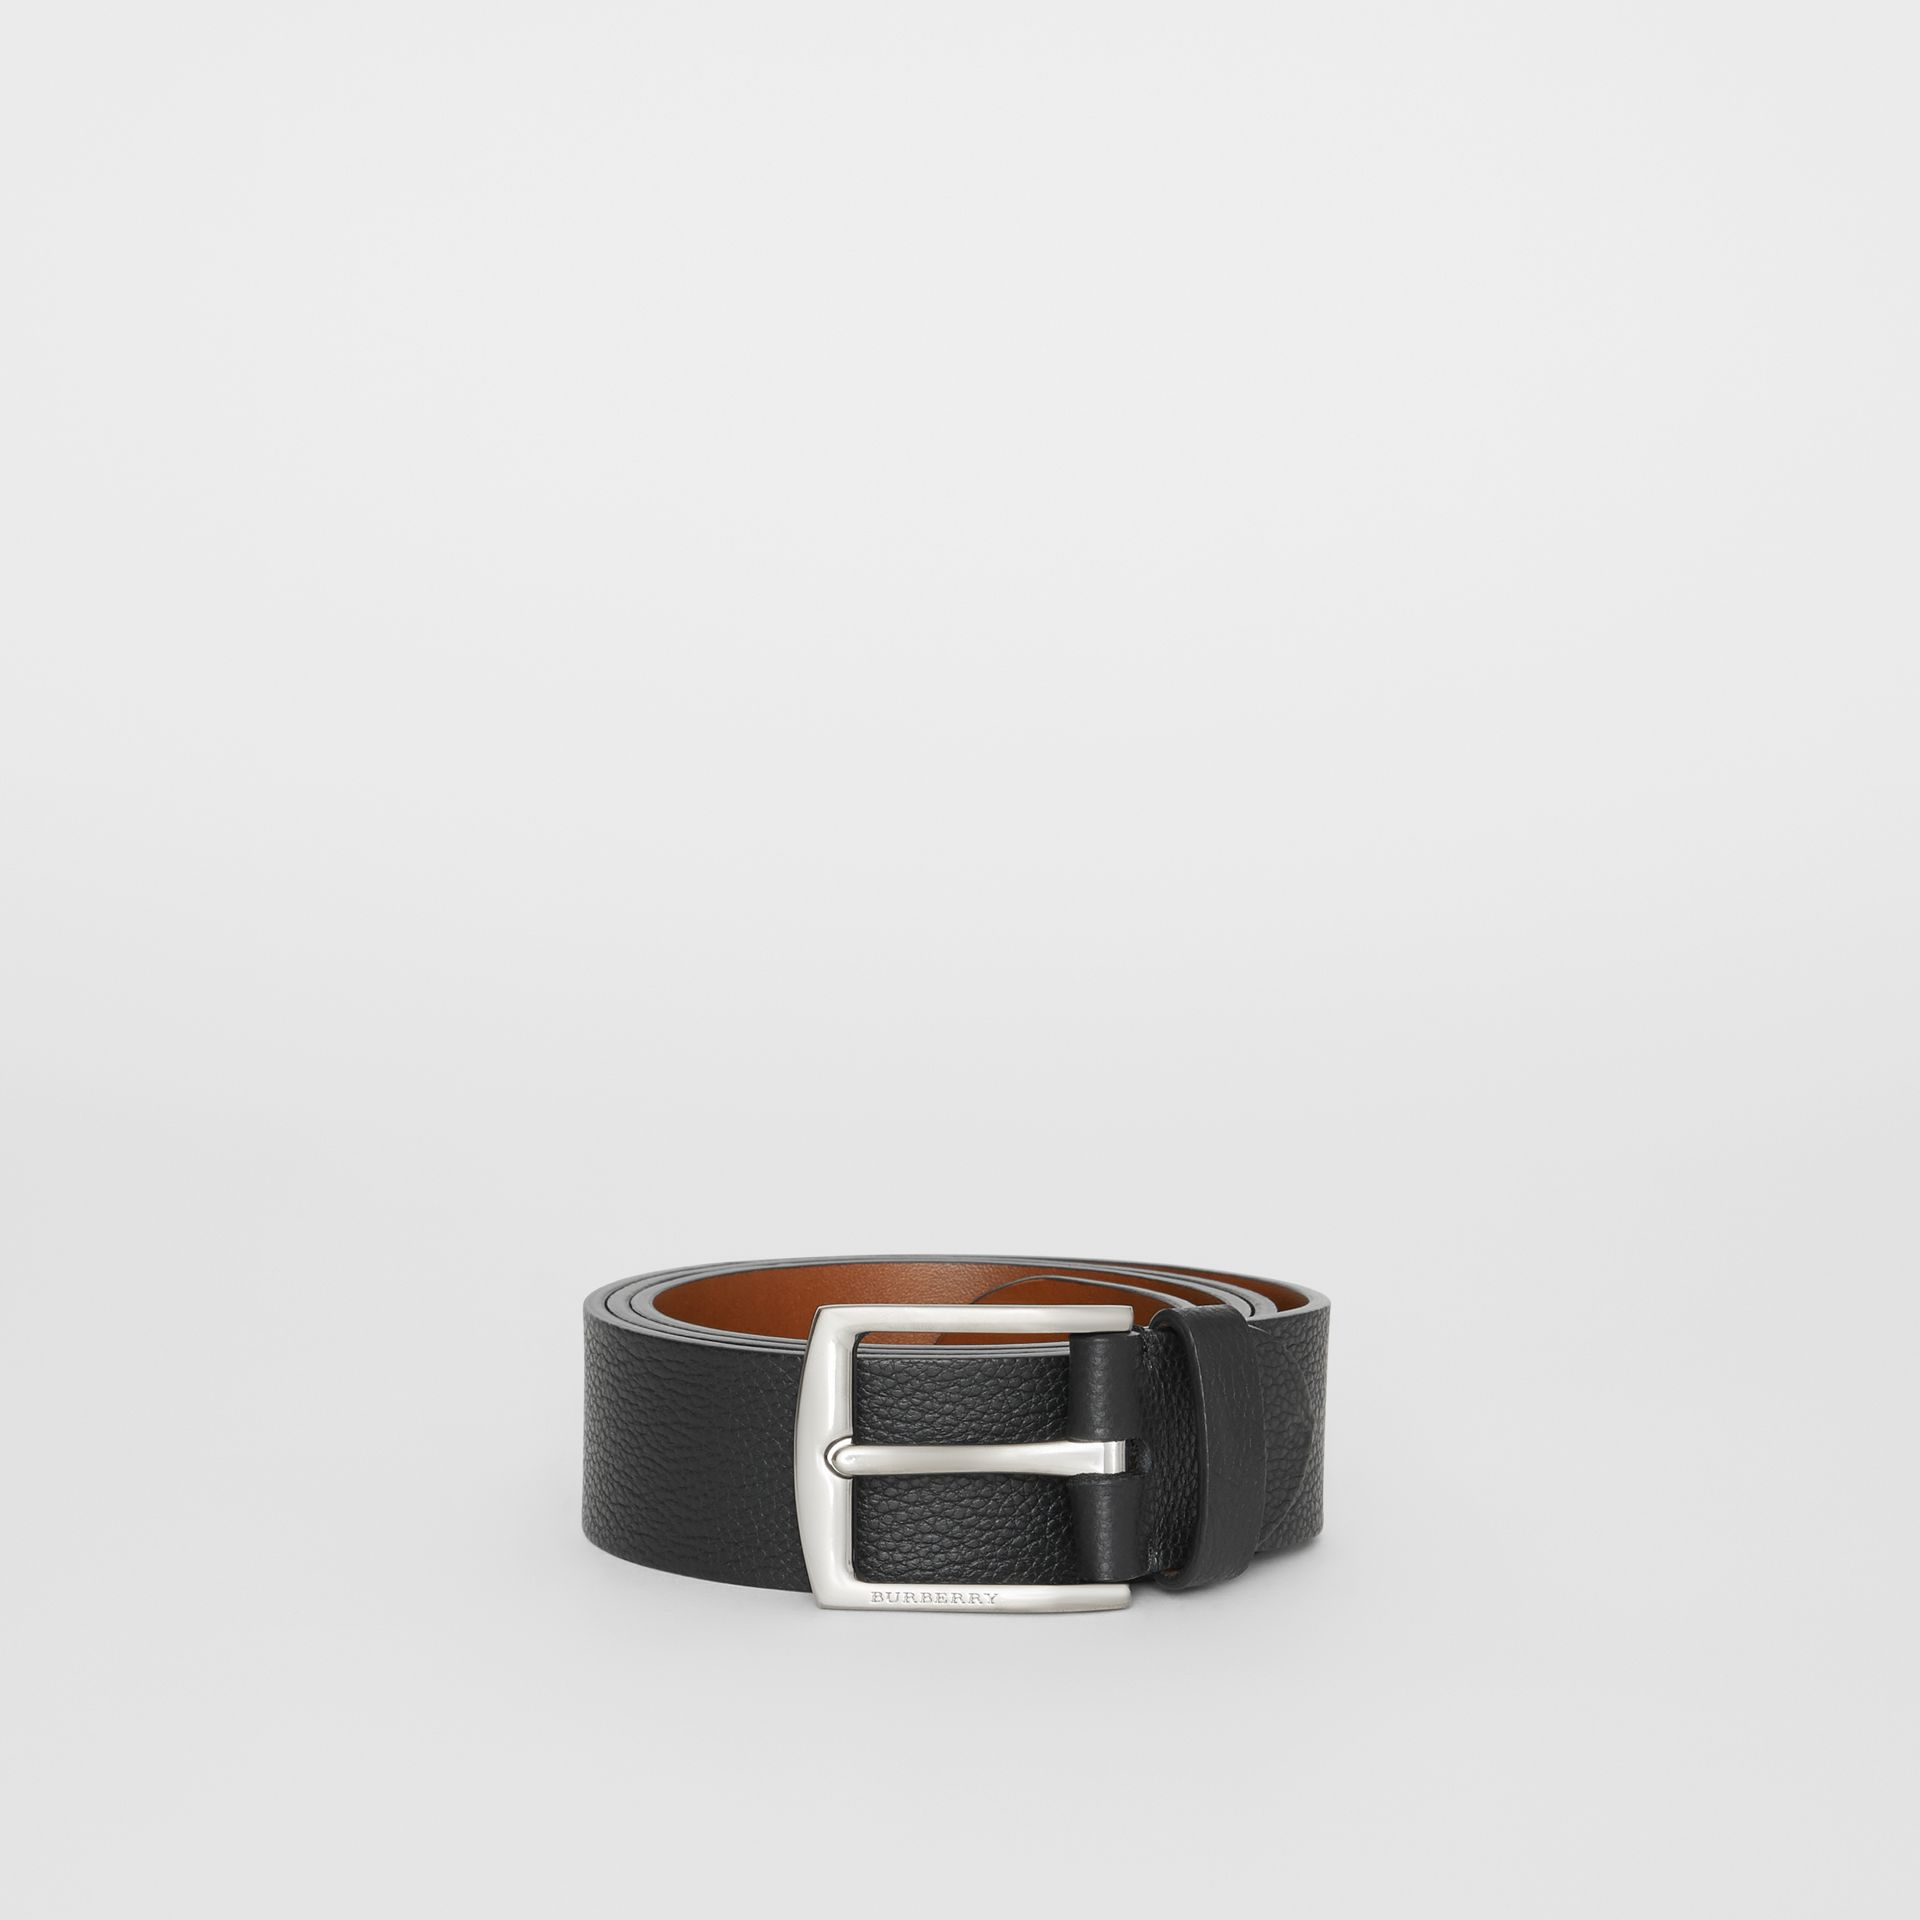 Grainy Leather Belt in Black - Men | Burberry - gallery image 3